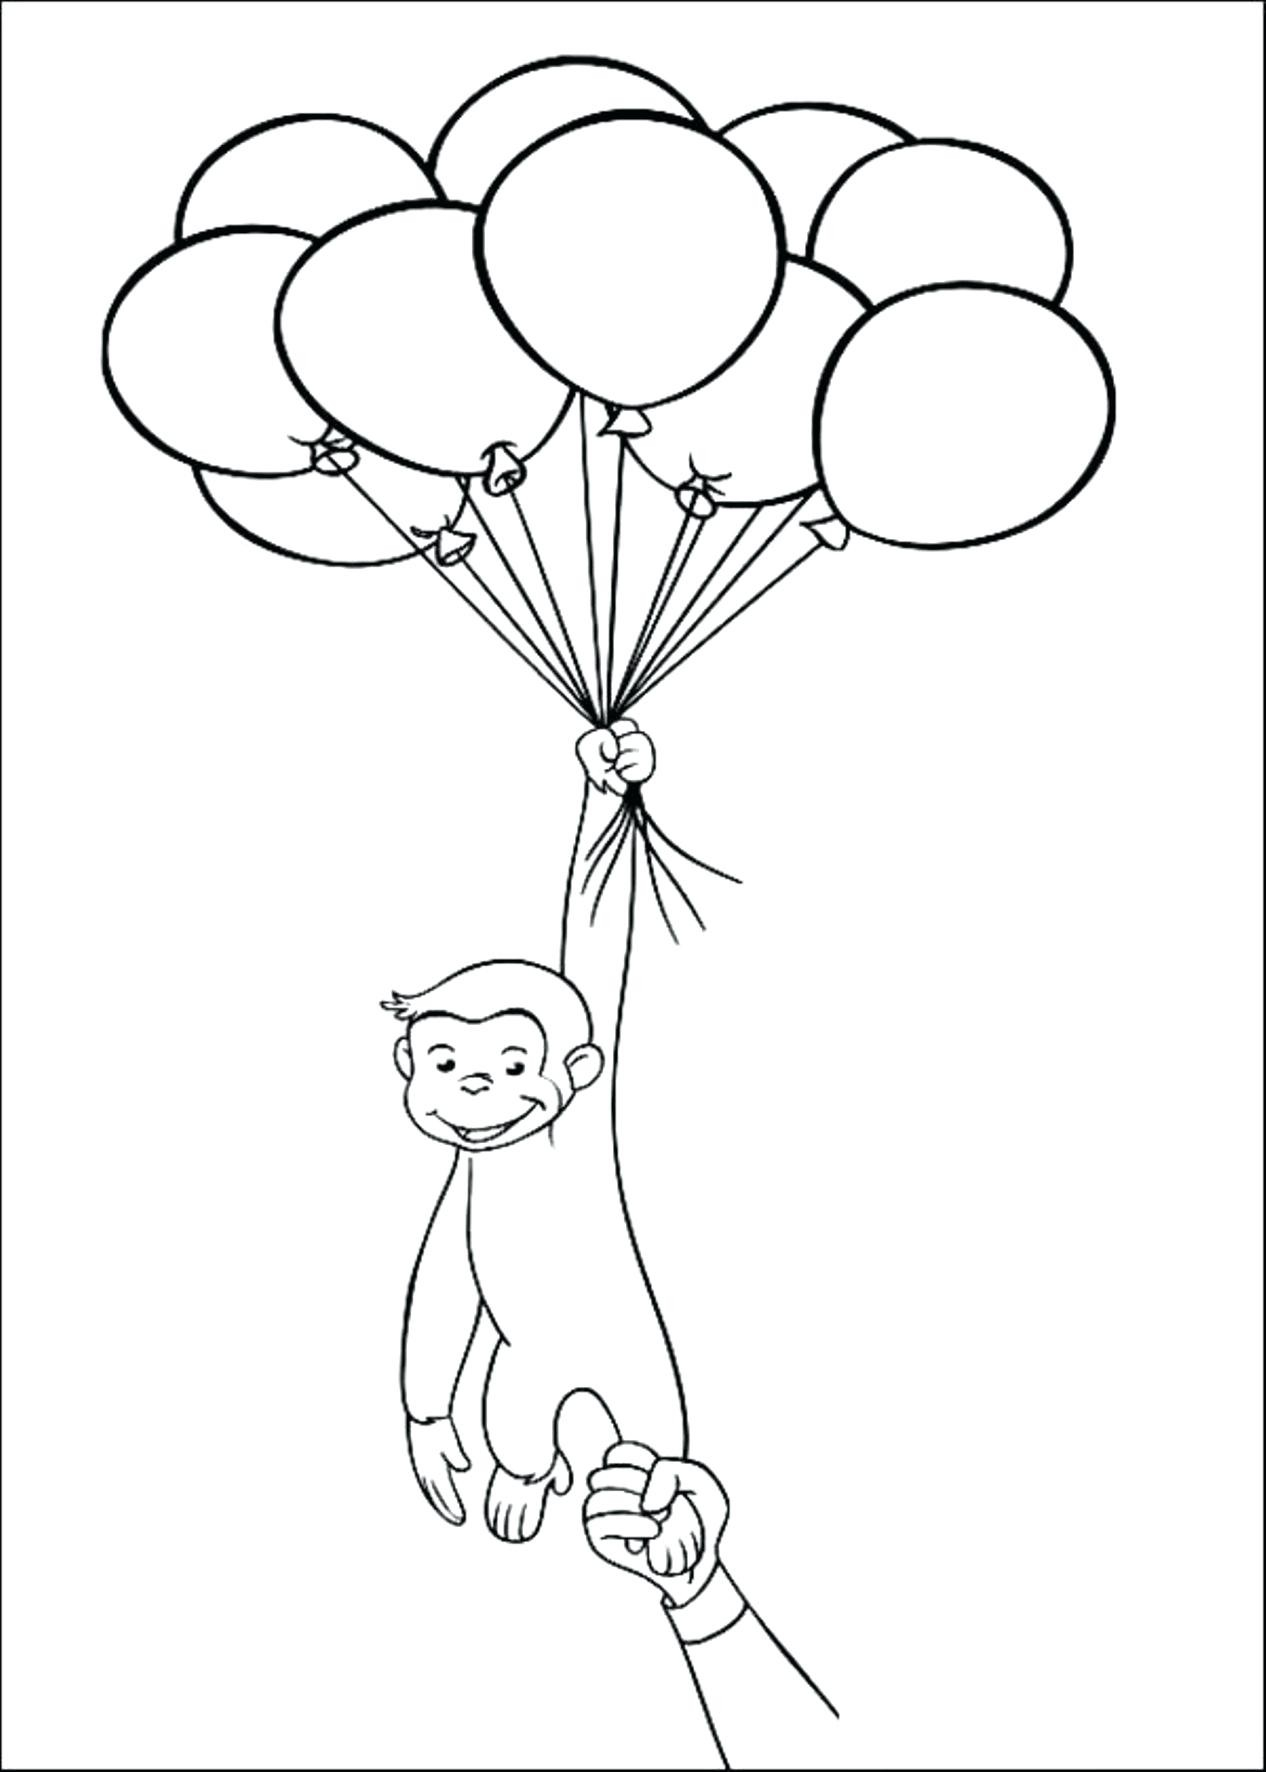 Hot Air Balloon Template Printable New Coloring Pages Balloon Download Of Fresh Hot Air Balloons Coloring Pages Collection to Print